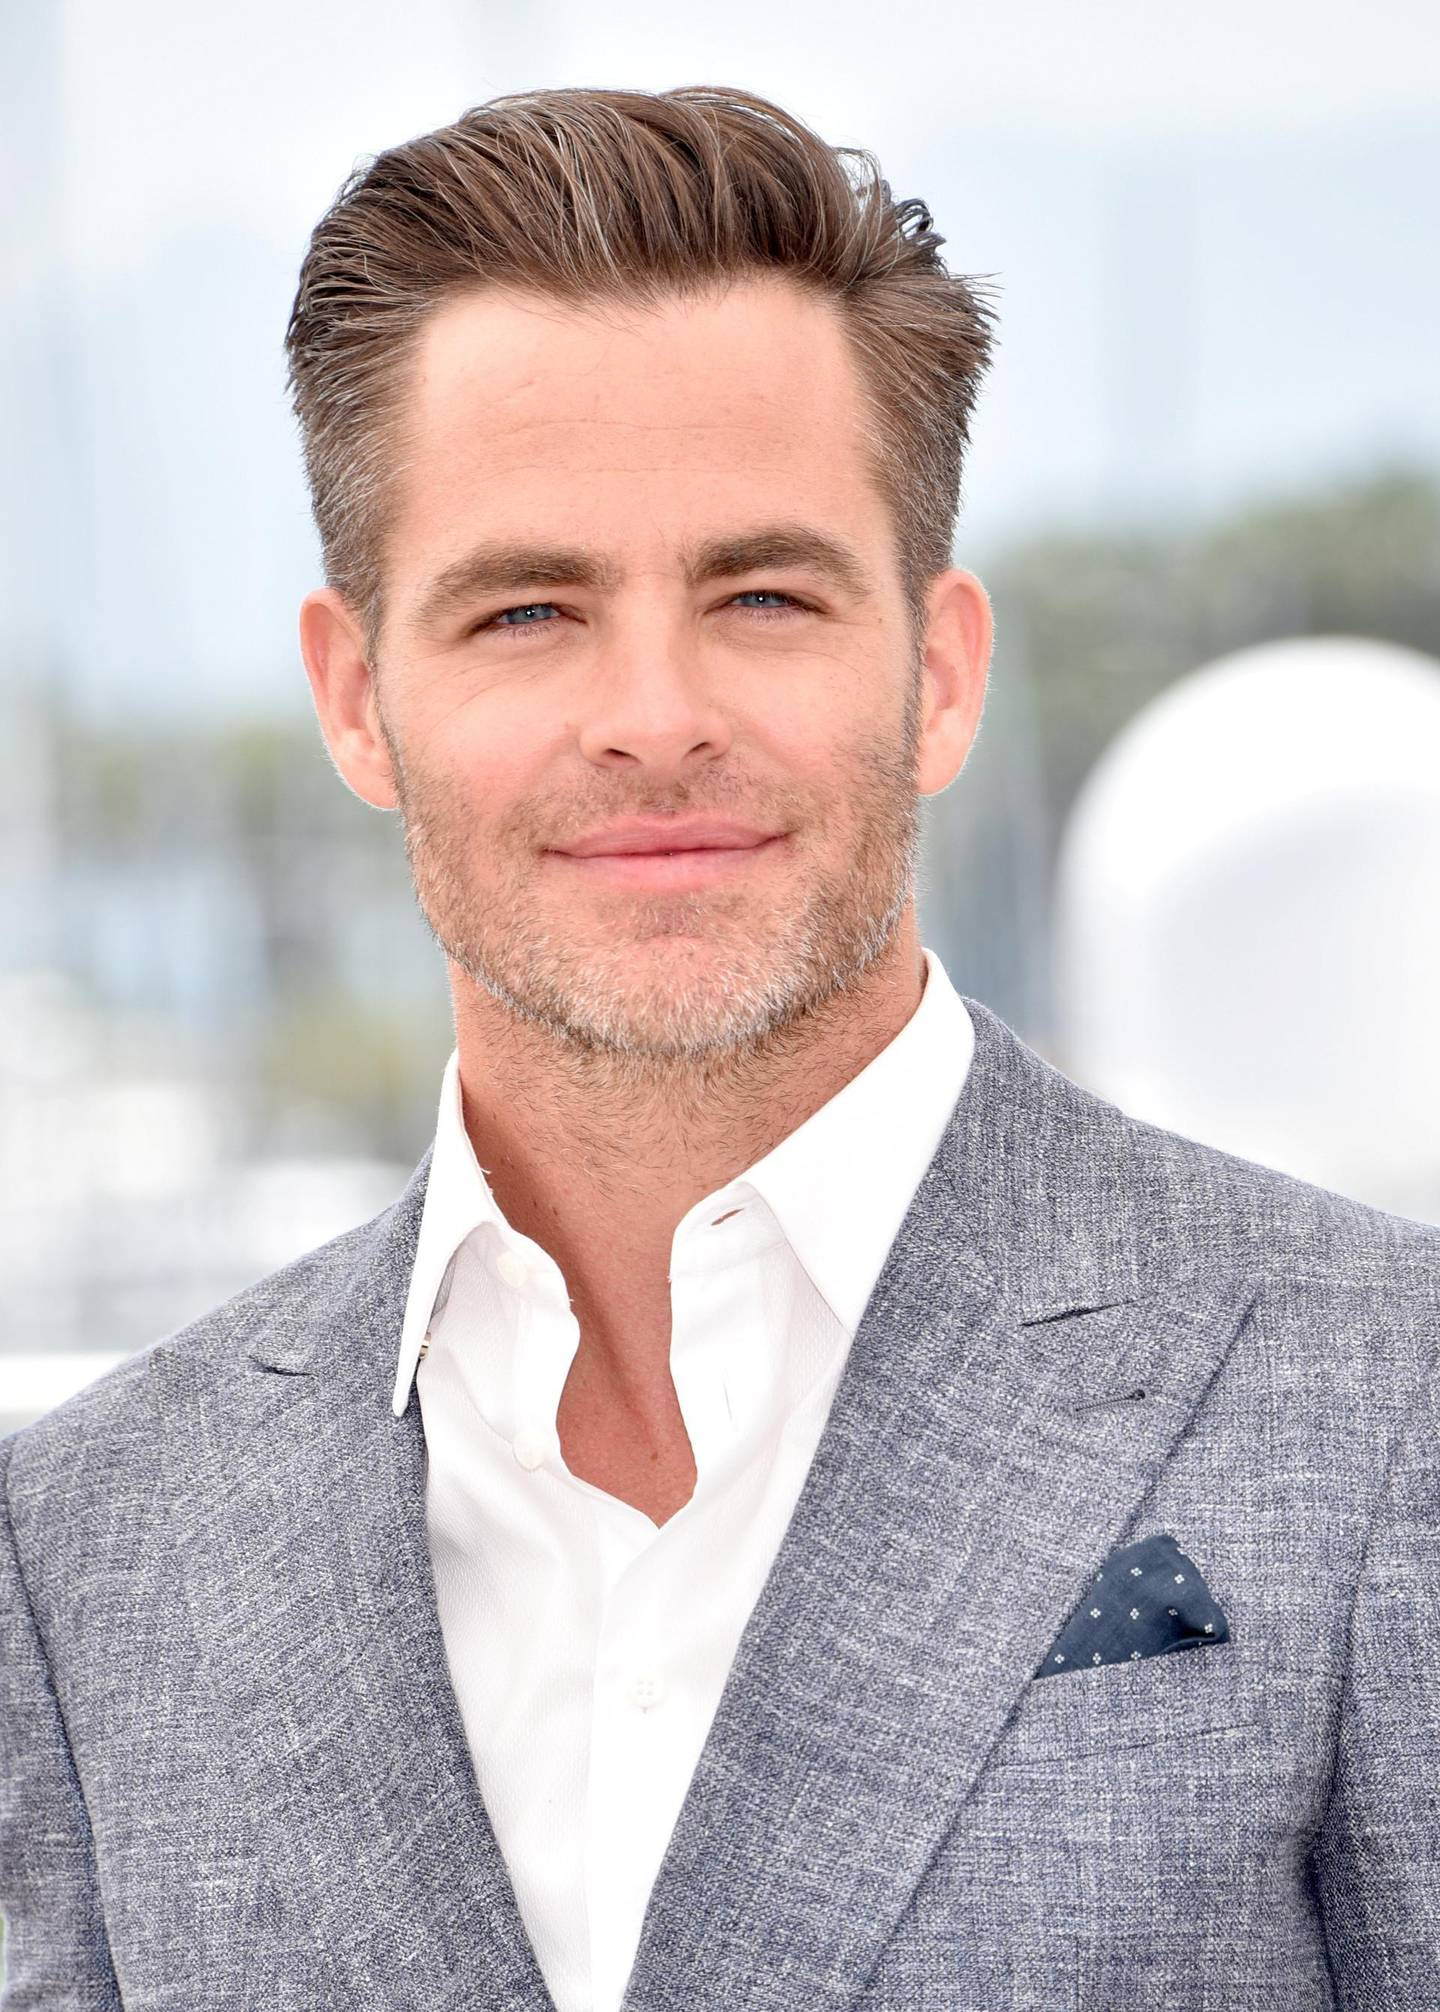 """CANNES, FRANCE - MAY 16:  Chris Pine attends the """"Hell Or High Water"""" Photocall during the 69th Annual Cannes Film Festival on May 16, 2016 in Cannes, France.  (Photo by Clemens Bilan/Getty Images)"""